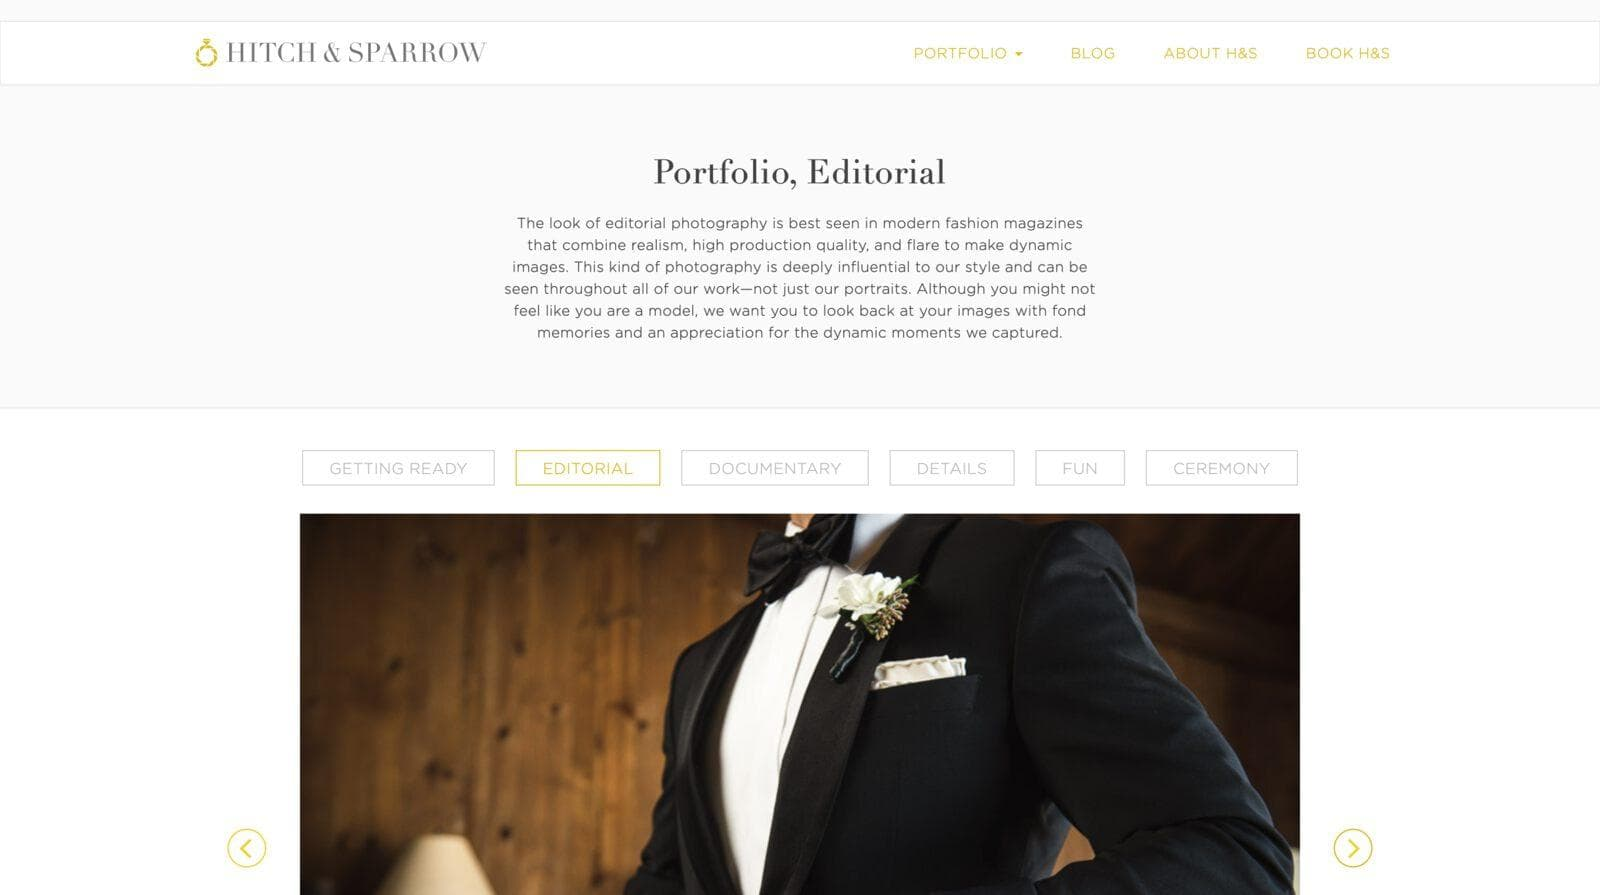 Screenshot of the portfolio page on the website